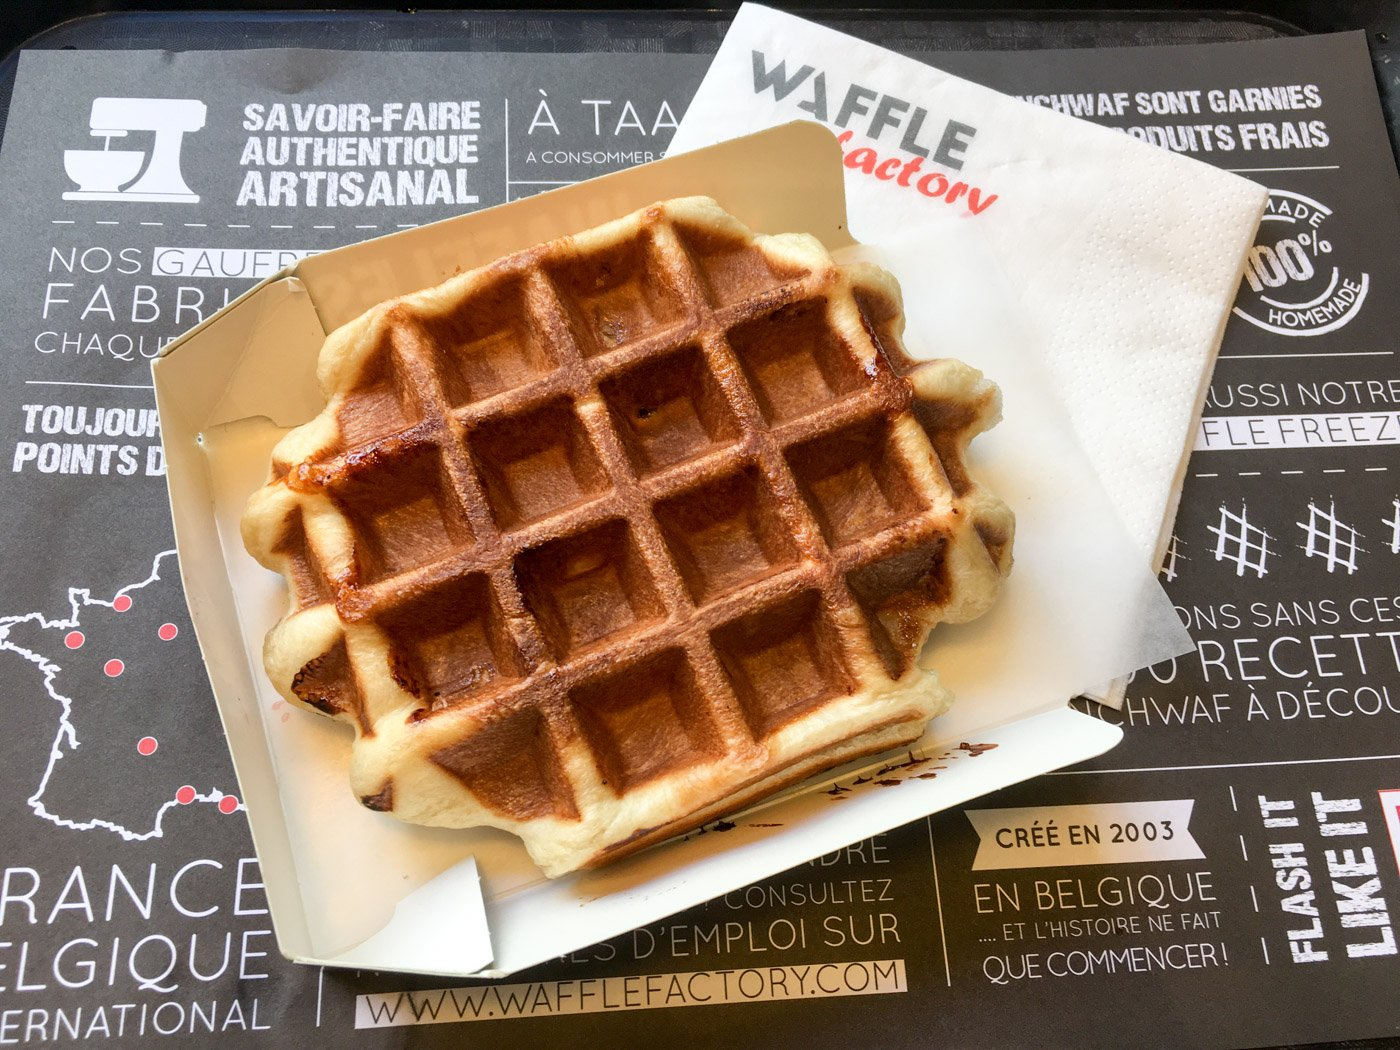 Visiting Belgium and want the inside scoop on Belgian waffles? Check out this article on the best waffles in Brussels, Belgium!